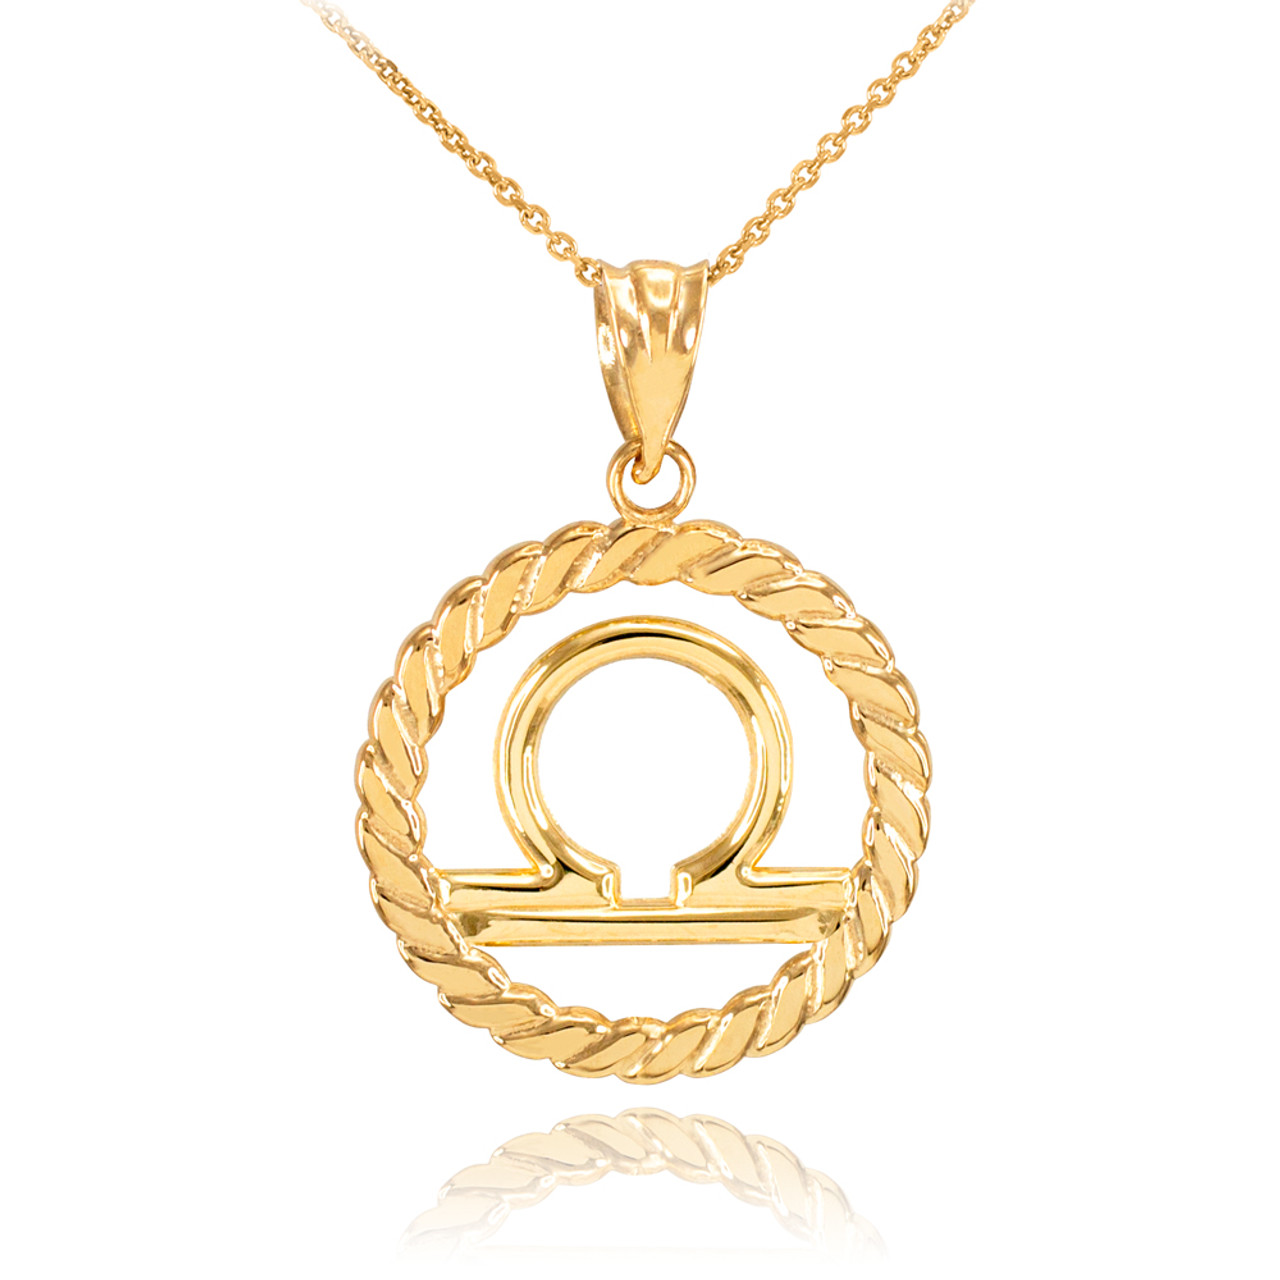 Yellow gold libra zodiac sign in circle rope pendant necklace gold libra zodiac sign in circle rope pendant necklace aloadofball Images